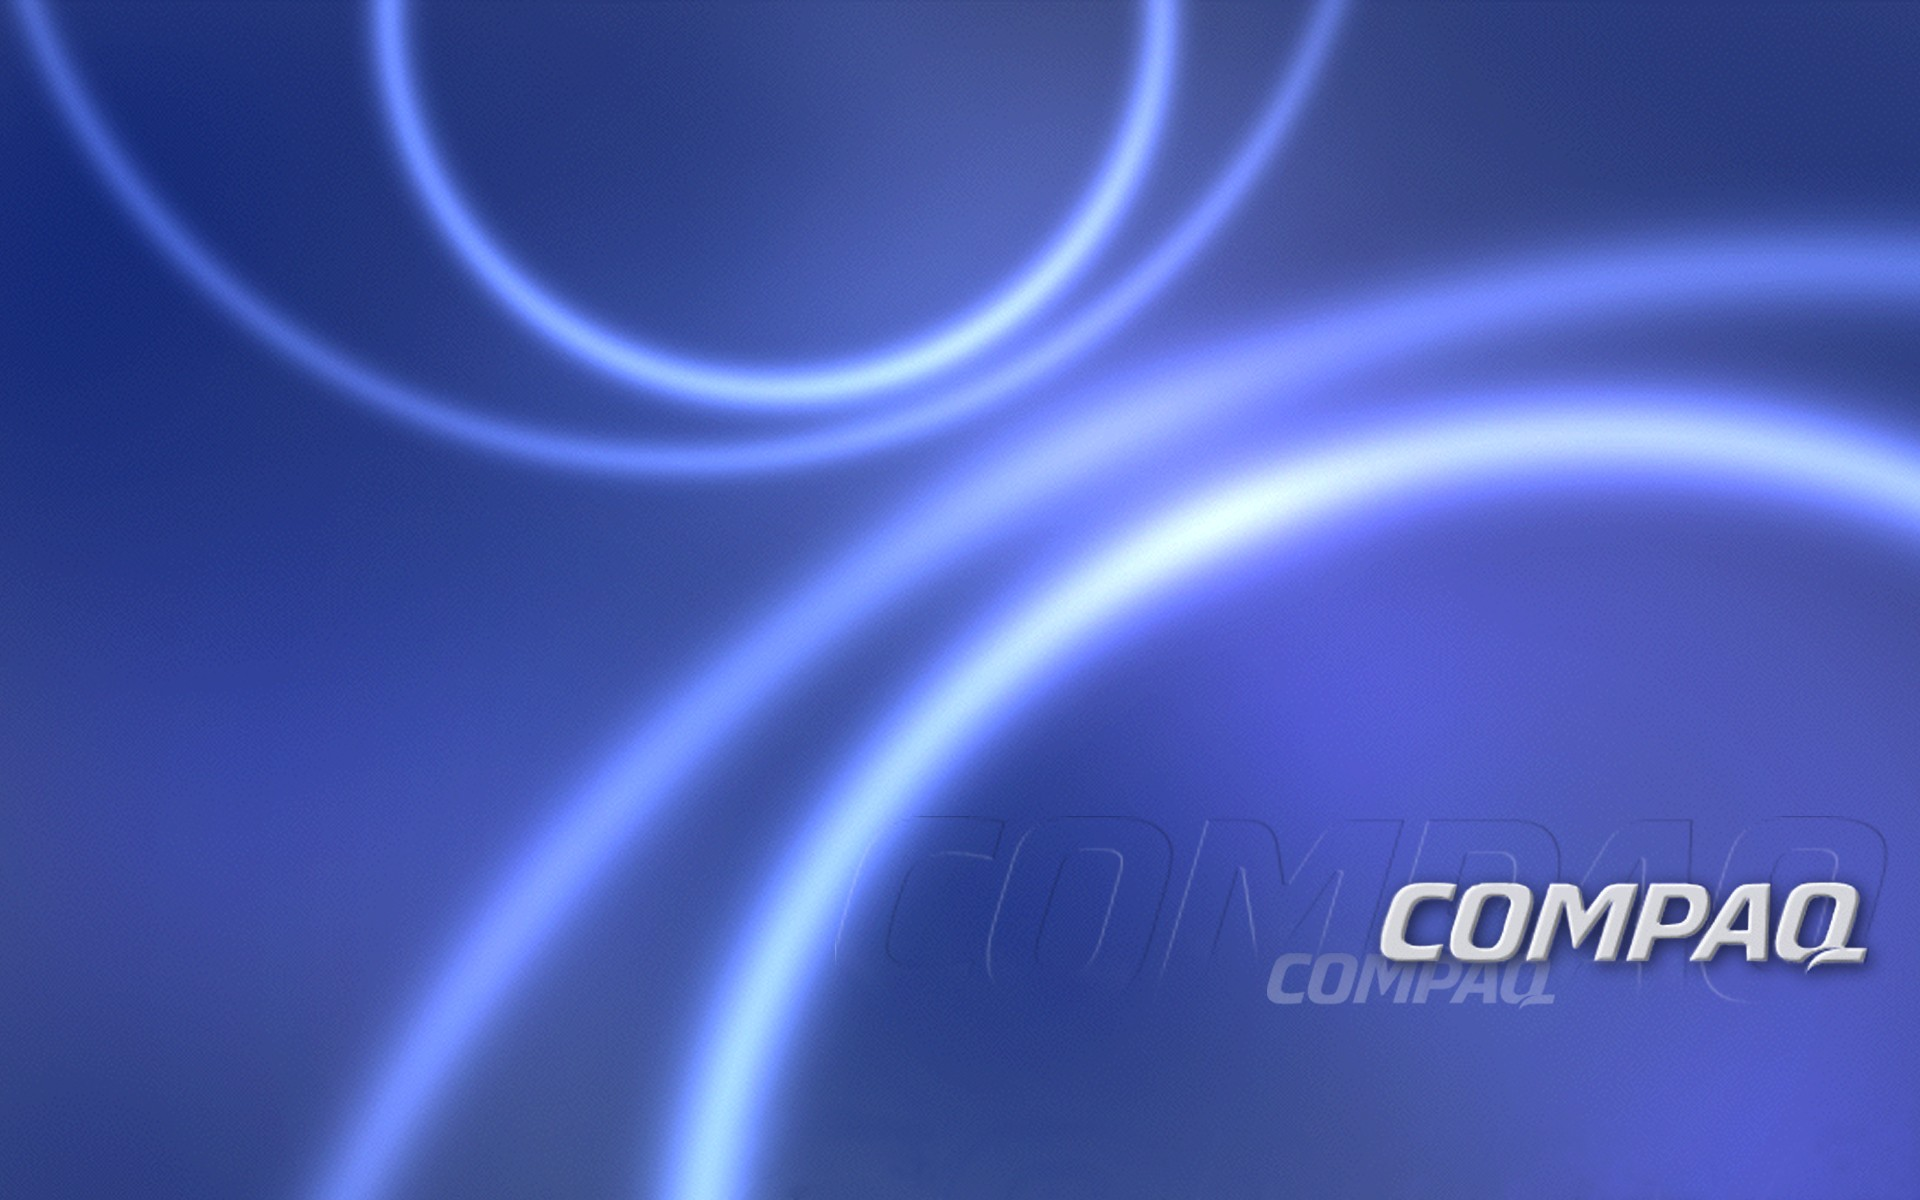 compaq desktop wallpaper 59637